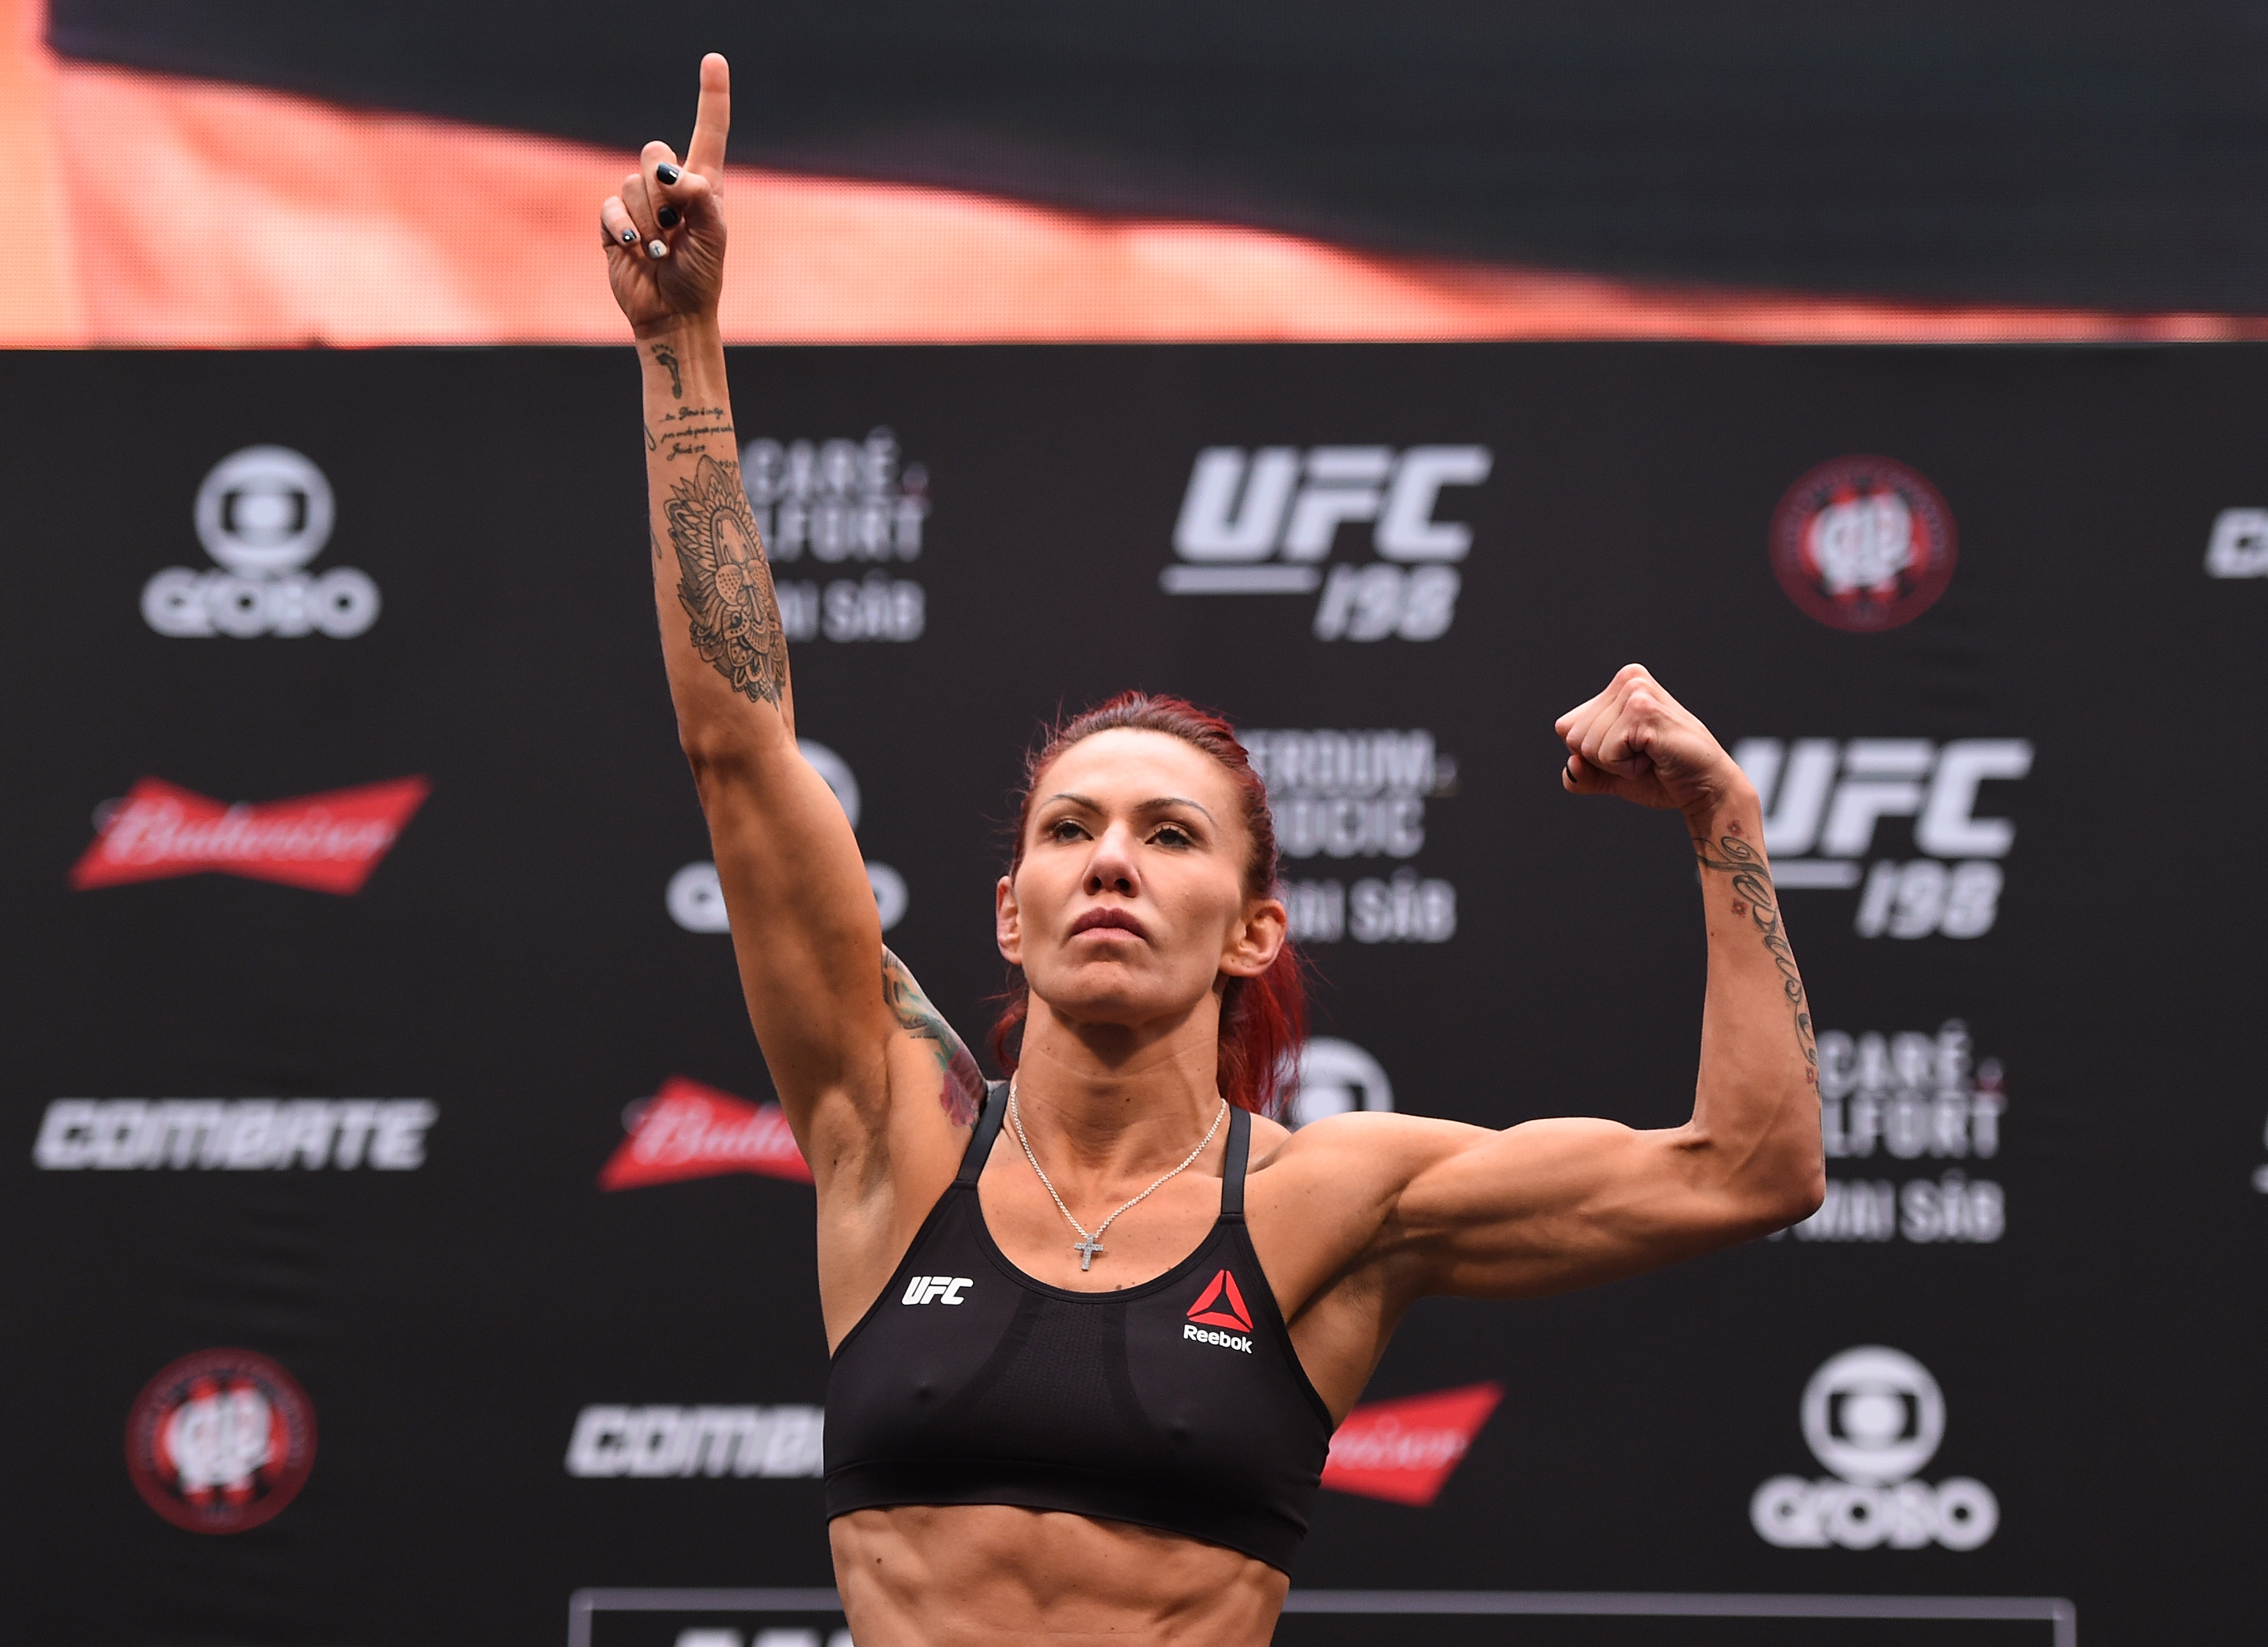 Cris Cyborg suggests her and Ronda Rousey should fight in the WWE